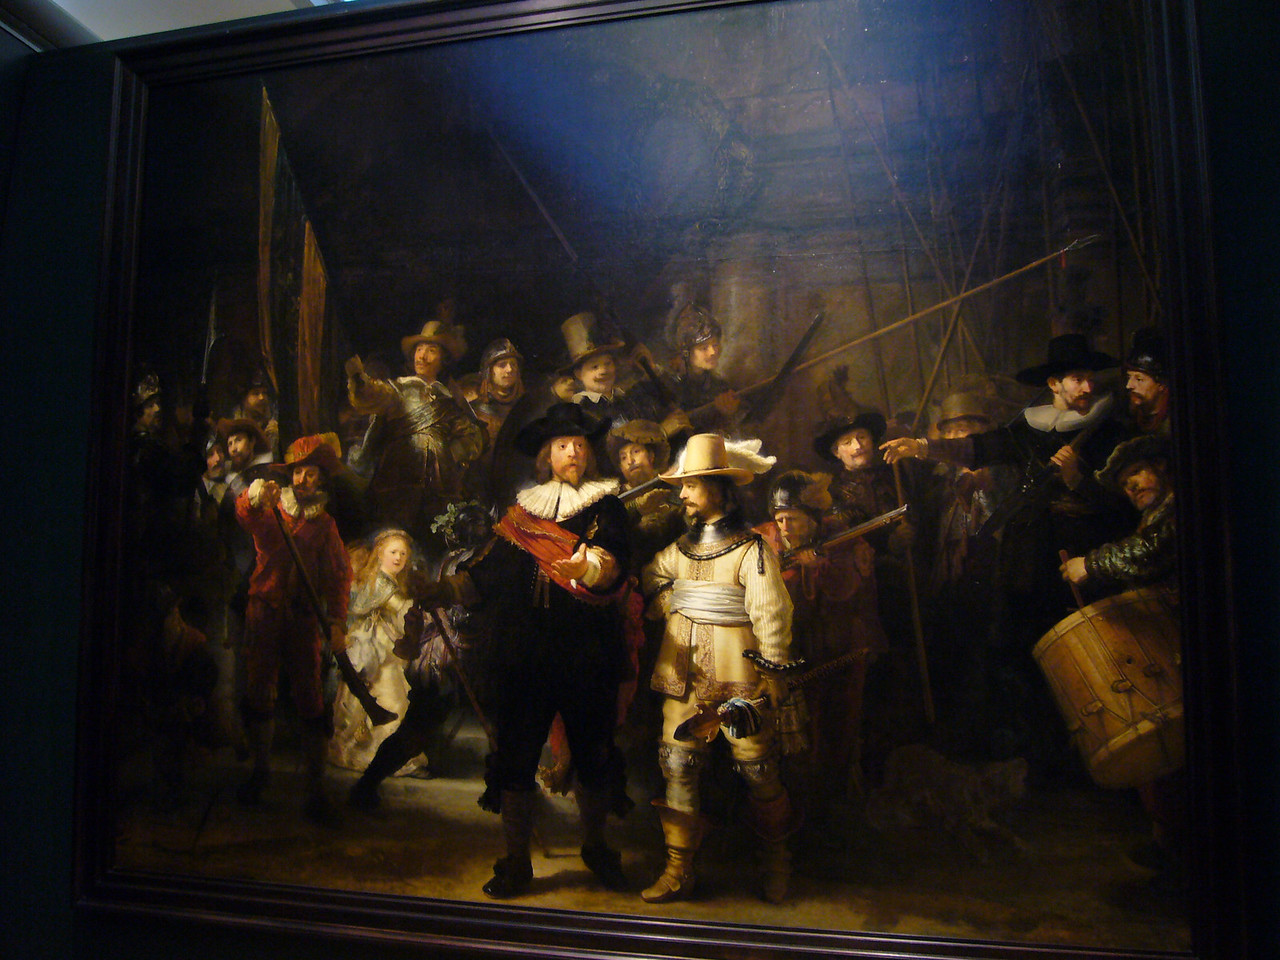 The museums most famous piece: Rembrandt's Nightwatch.